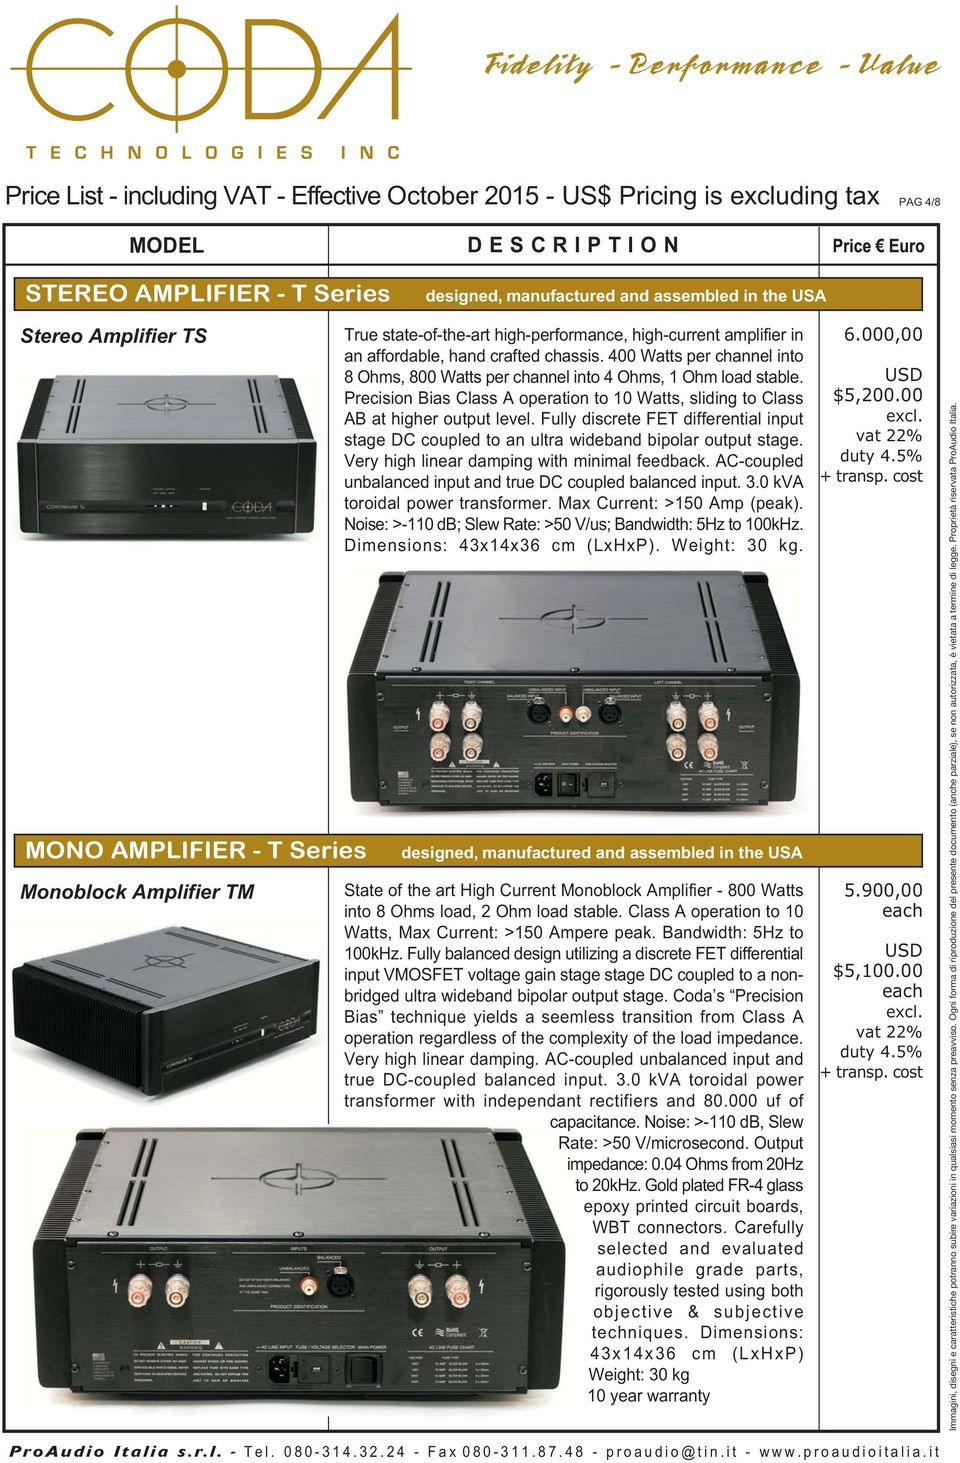 Price List Including Vat Effective October Us Pricing Is Dc Coupled Audio Amplifier Fully Discrete Fet Differential Input Stage To An Ultra Wideband Bipolar Output